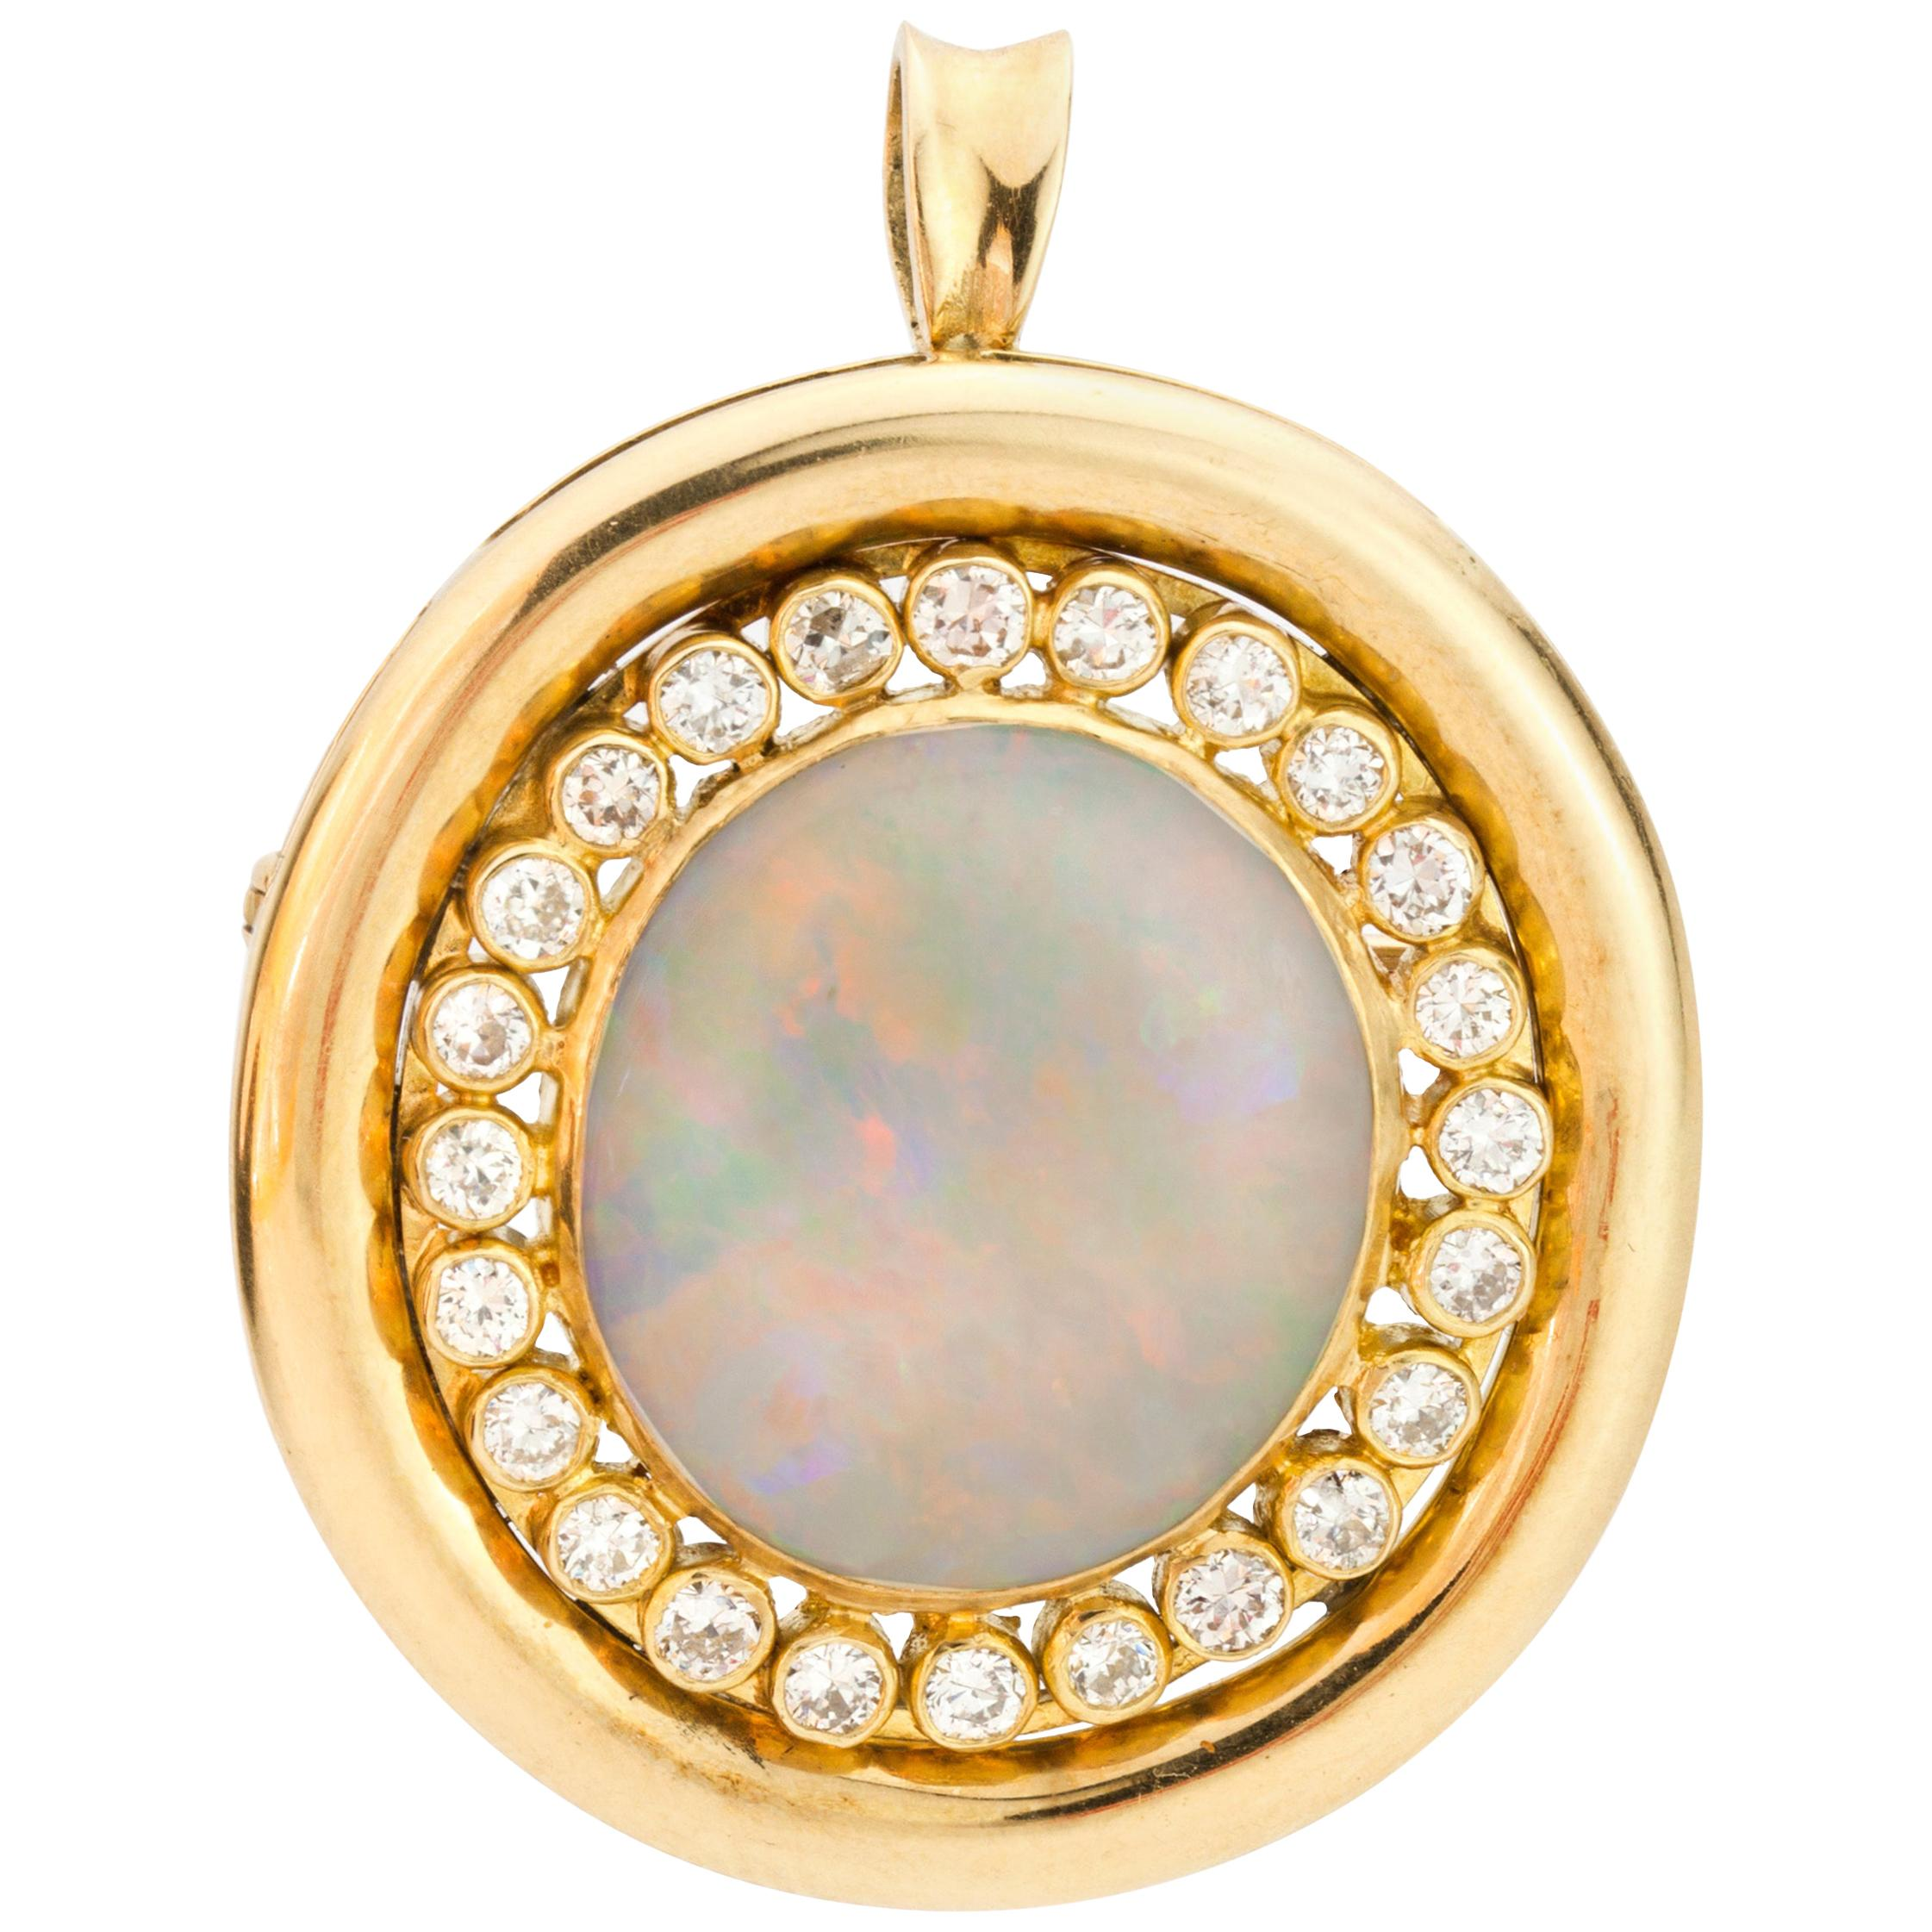 18 Karat Yellow Gold Brooch or Pendant with Natural Opal and Diamonds